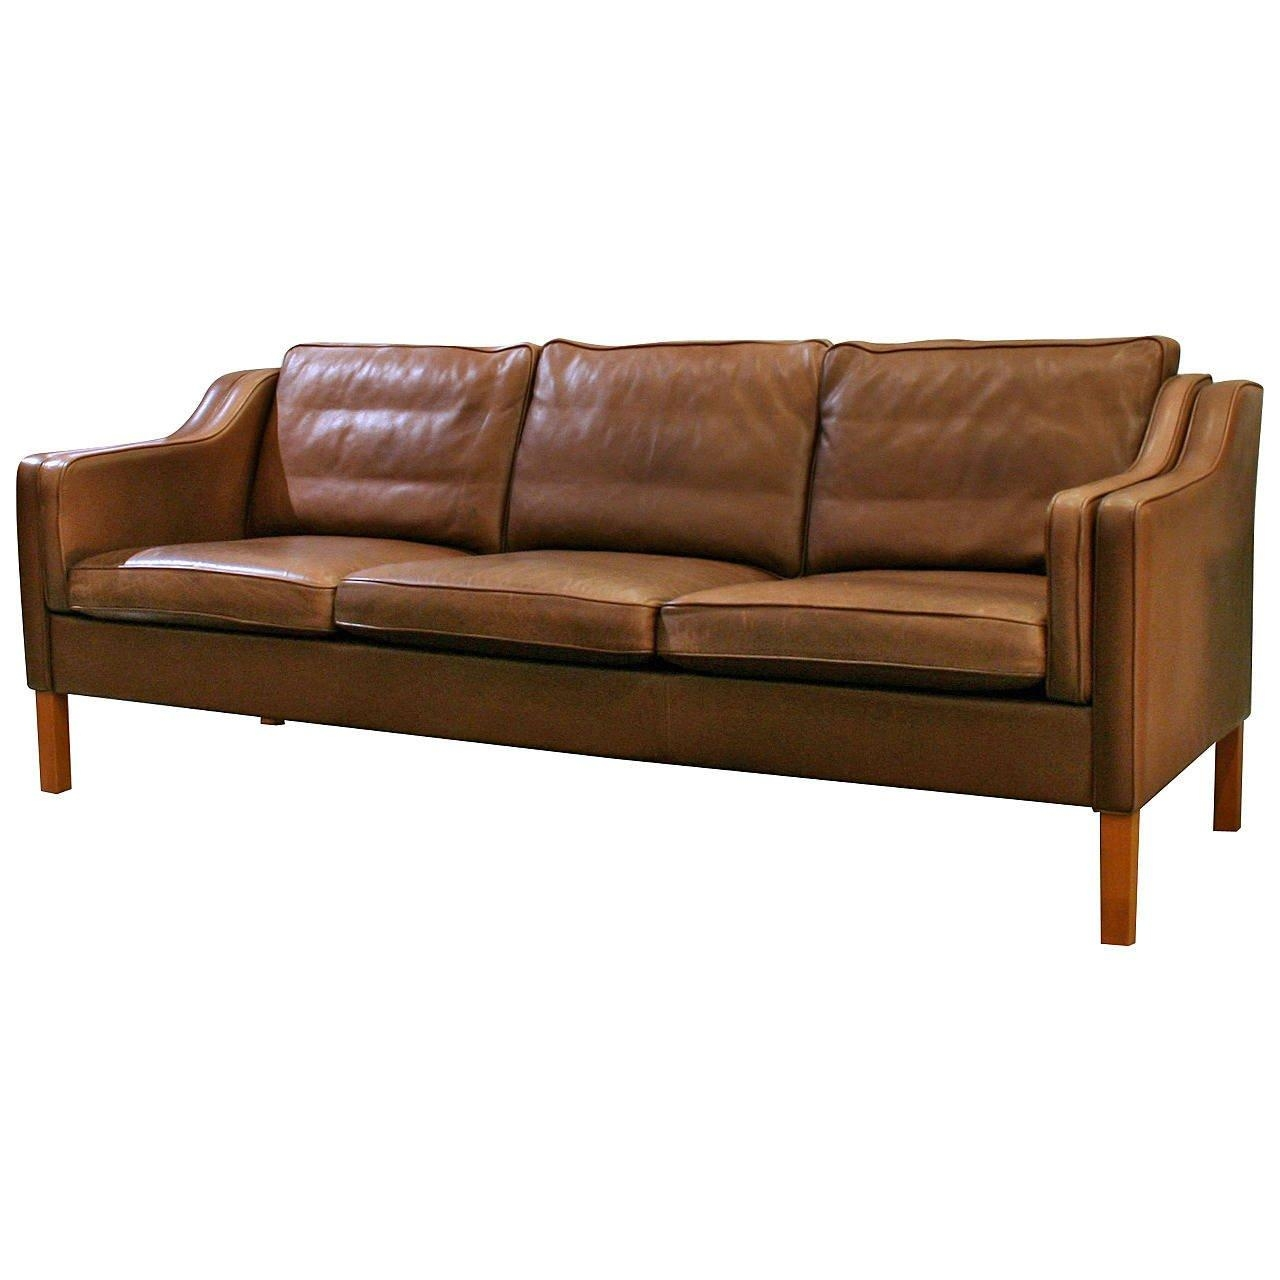 Vintage Danish Leather Sofa At 1Stdibs throughout Danish Leather Sofas